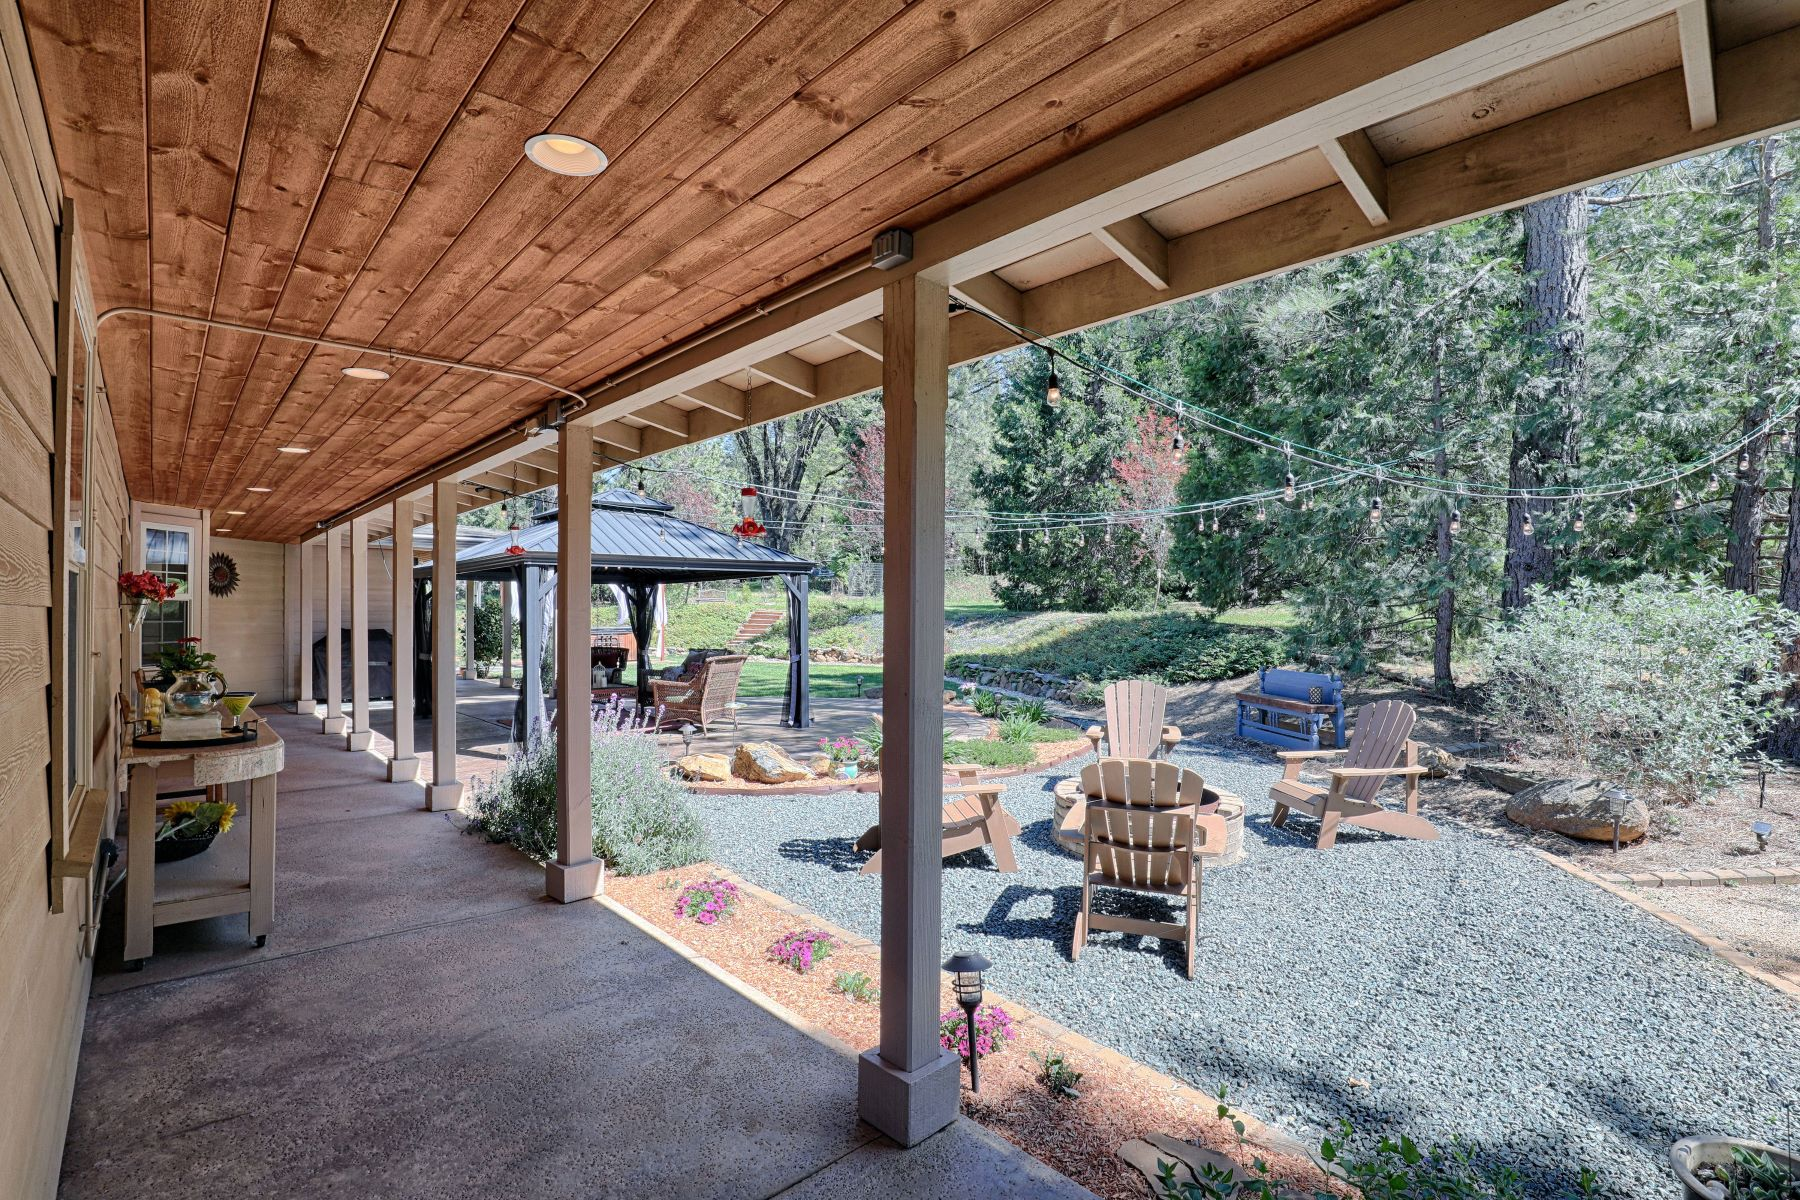 Additional photo for property listing at 13689 Meadow Drive, Grass Valley, CA 13689 Meadow Drive Grass Valley, California 95945 United States